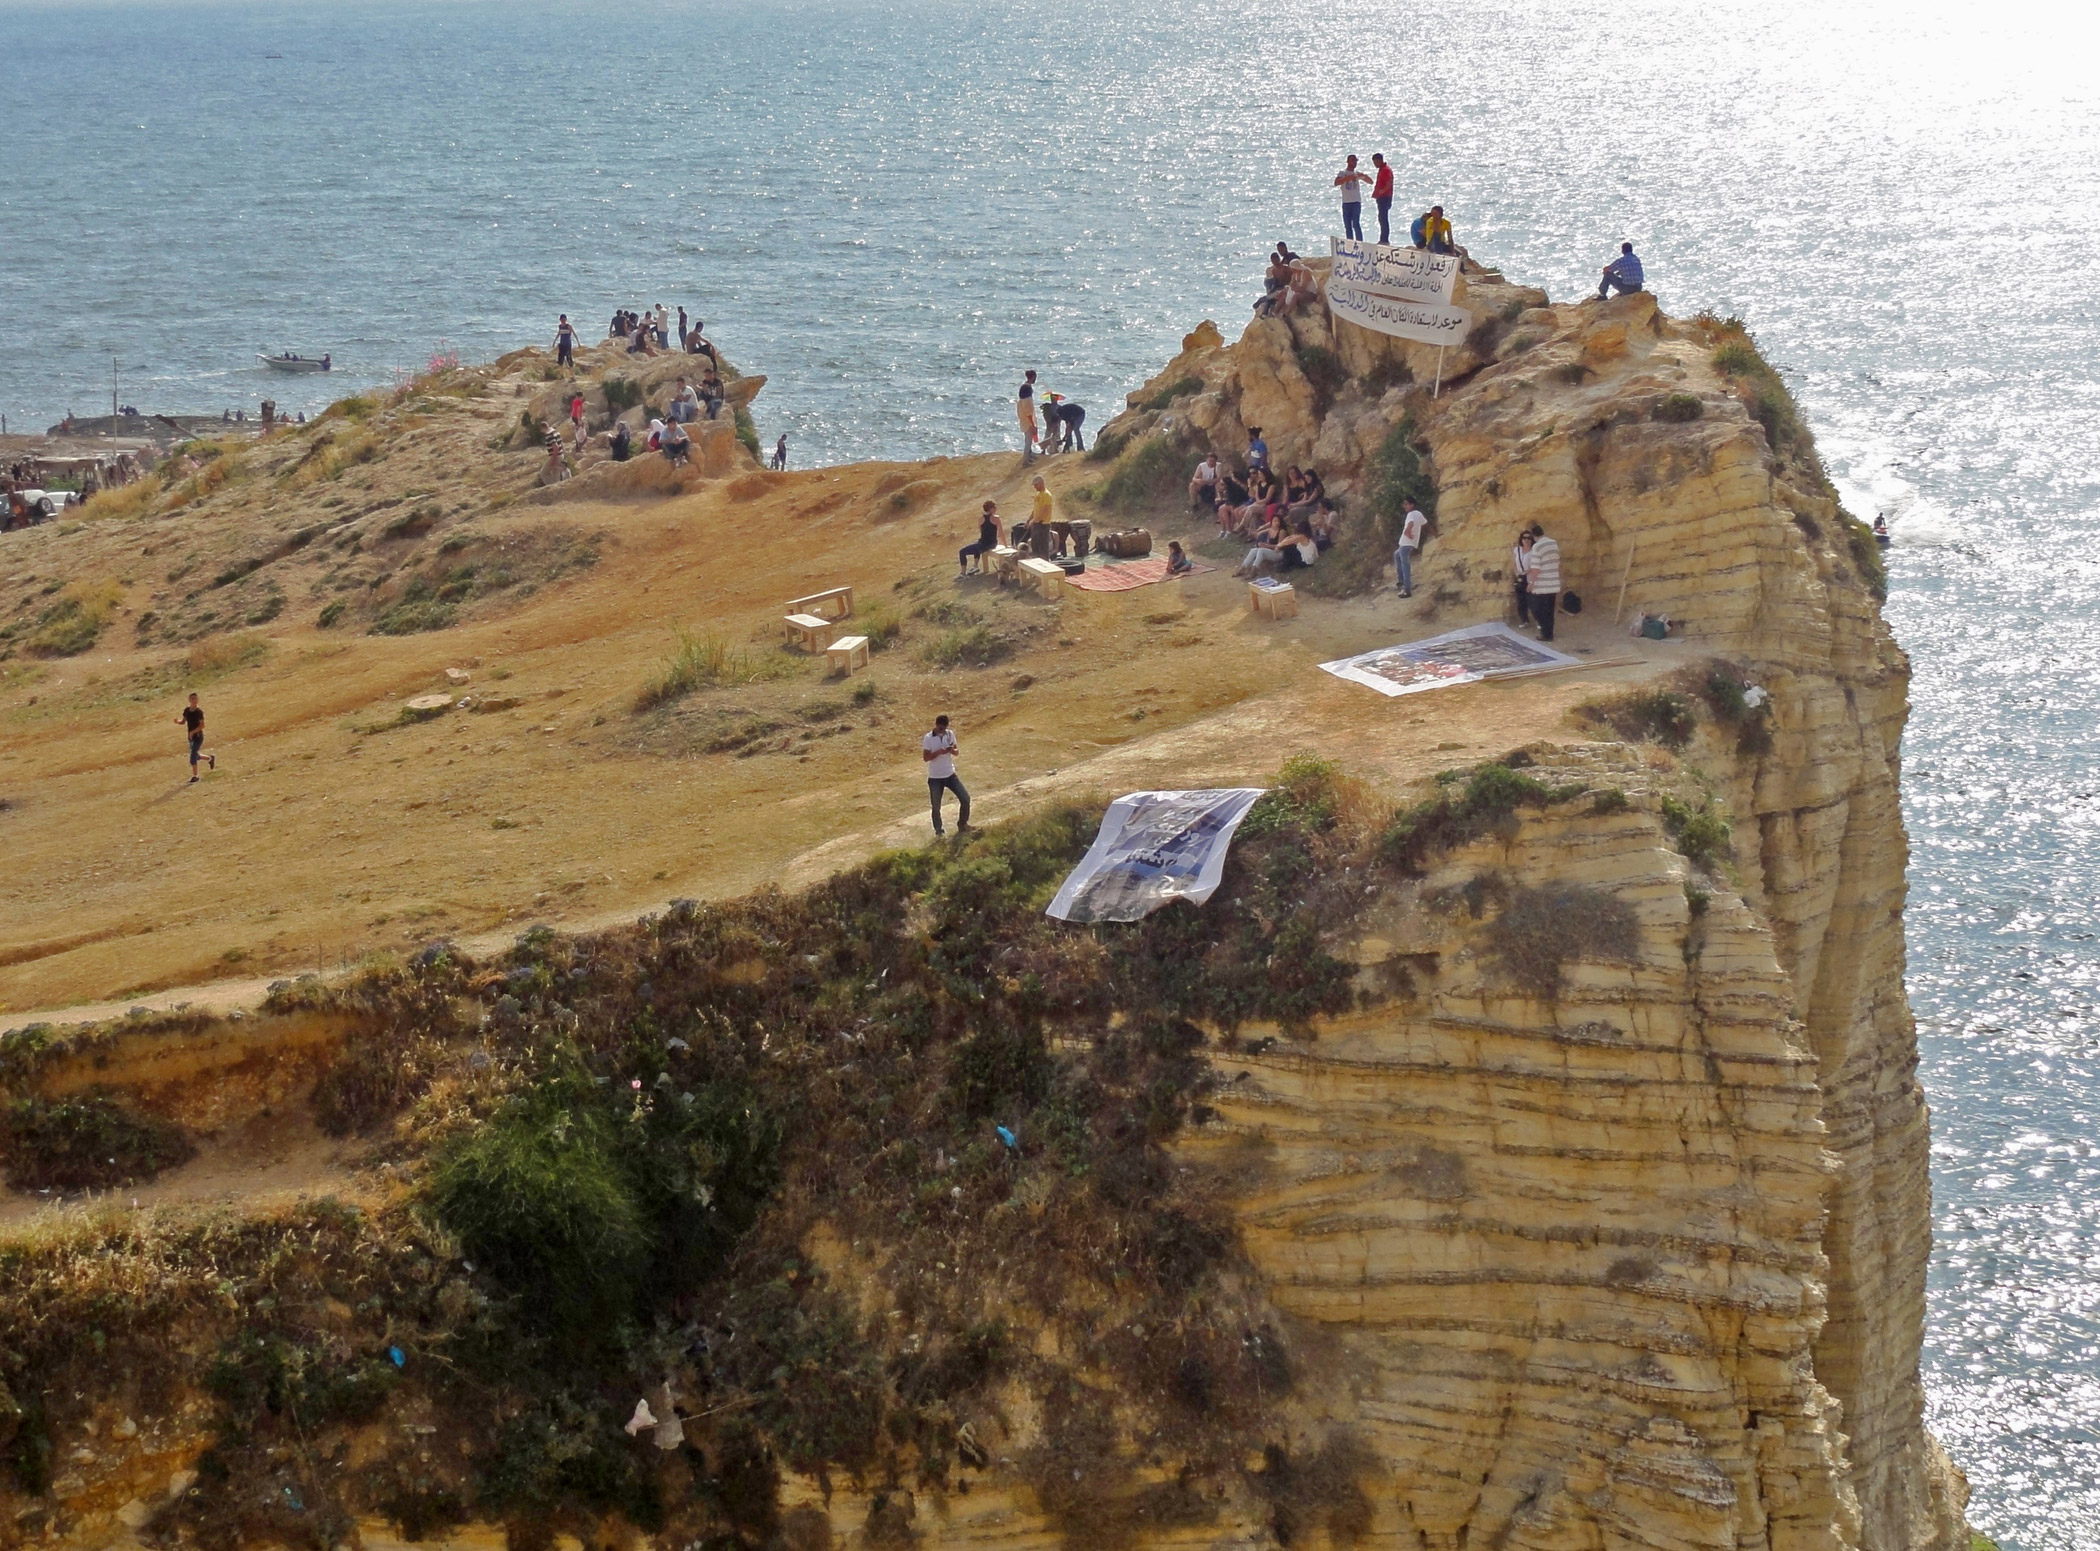 Lebanon, Dalieh of                               Raouche: Used as a public space for more than 7,000 years, the Dalieh of Raouche may become the latest victim of a development frenzy that has destroyed or privatized many of Beirut's open spaces.